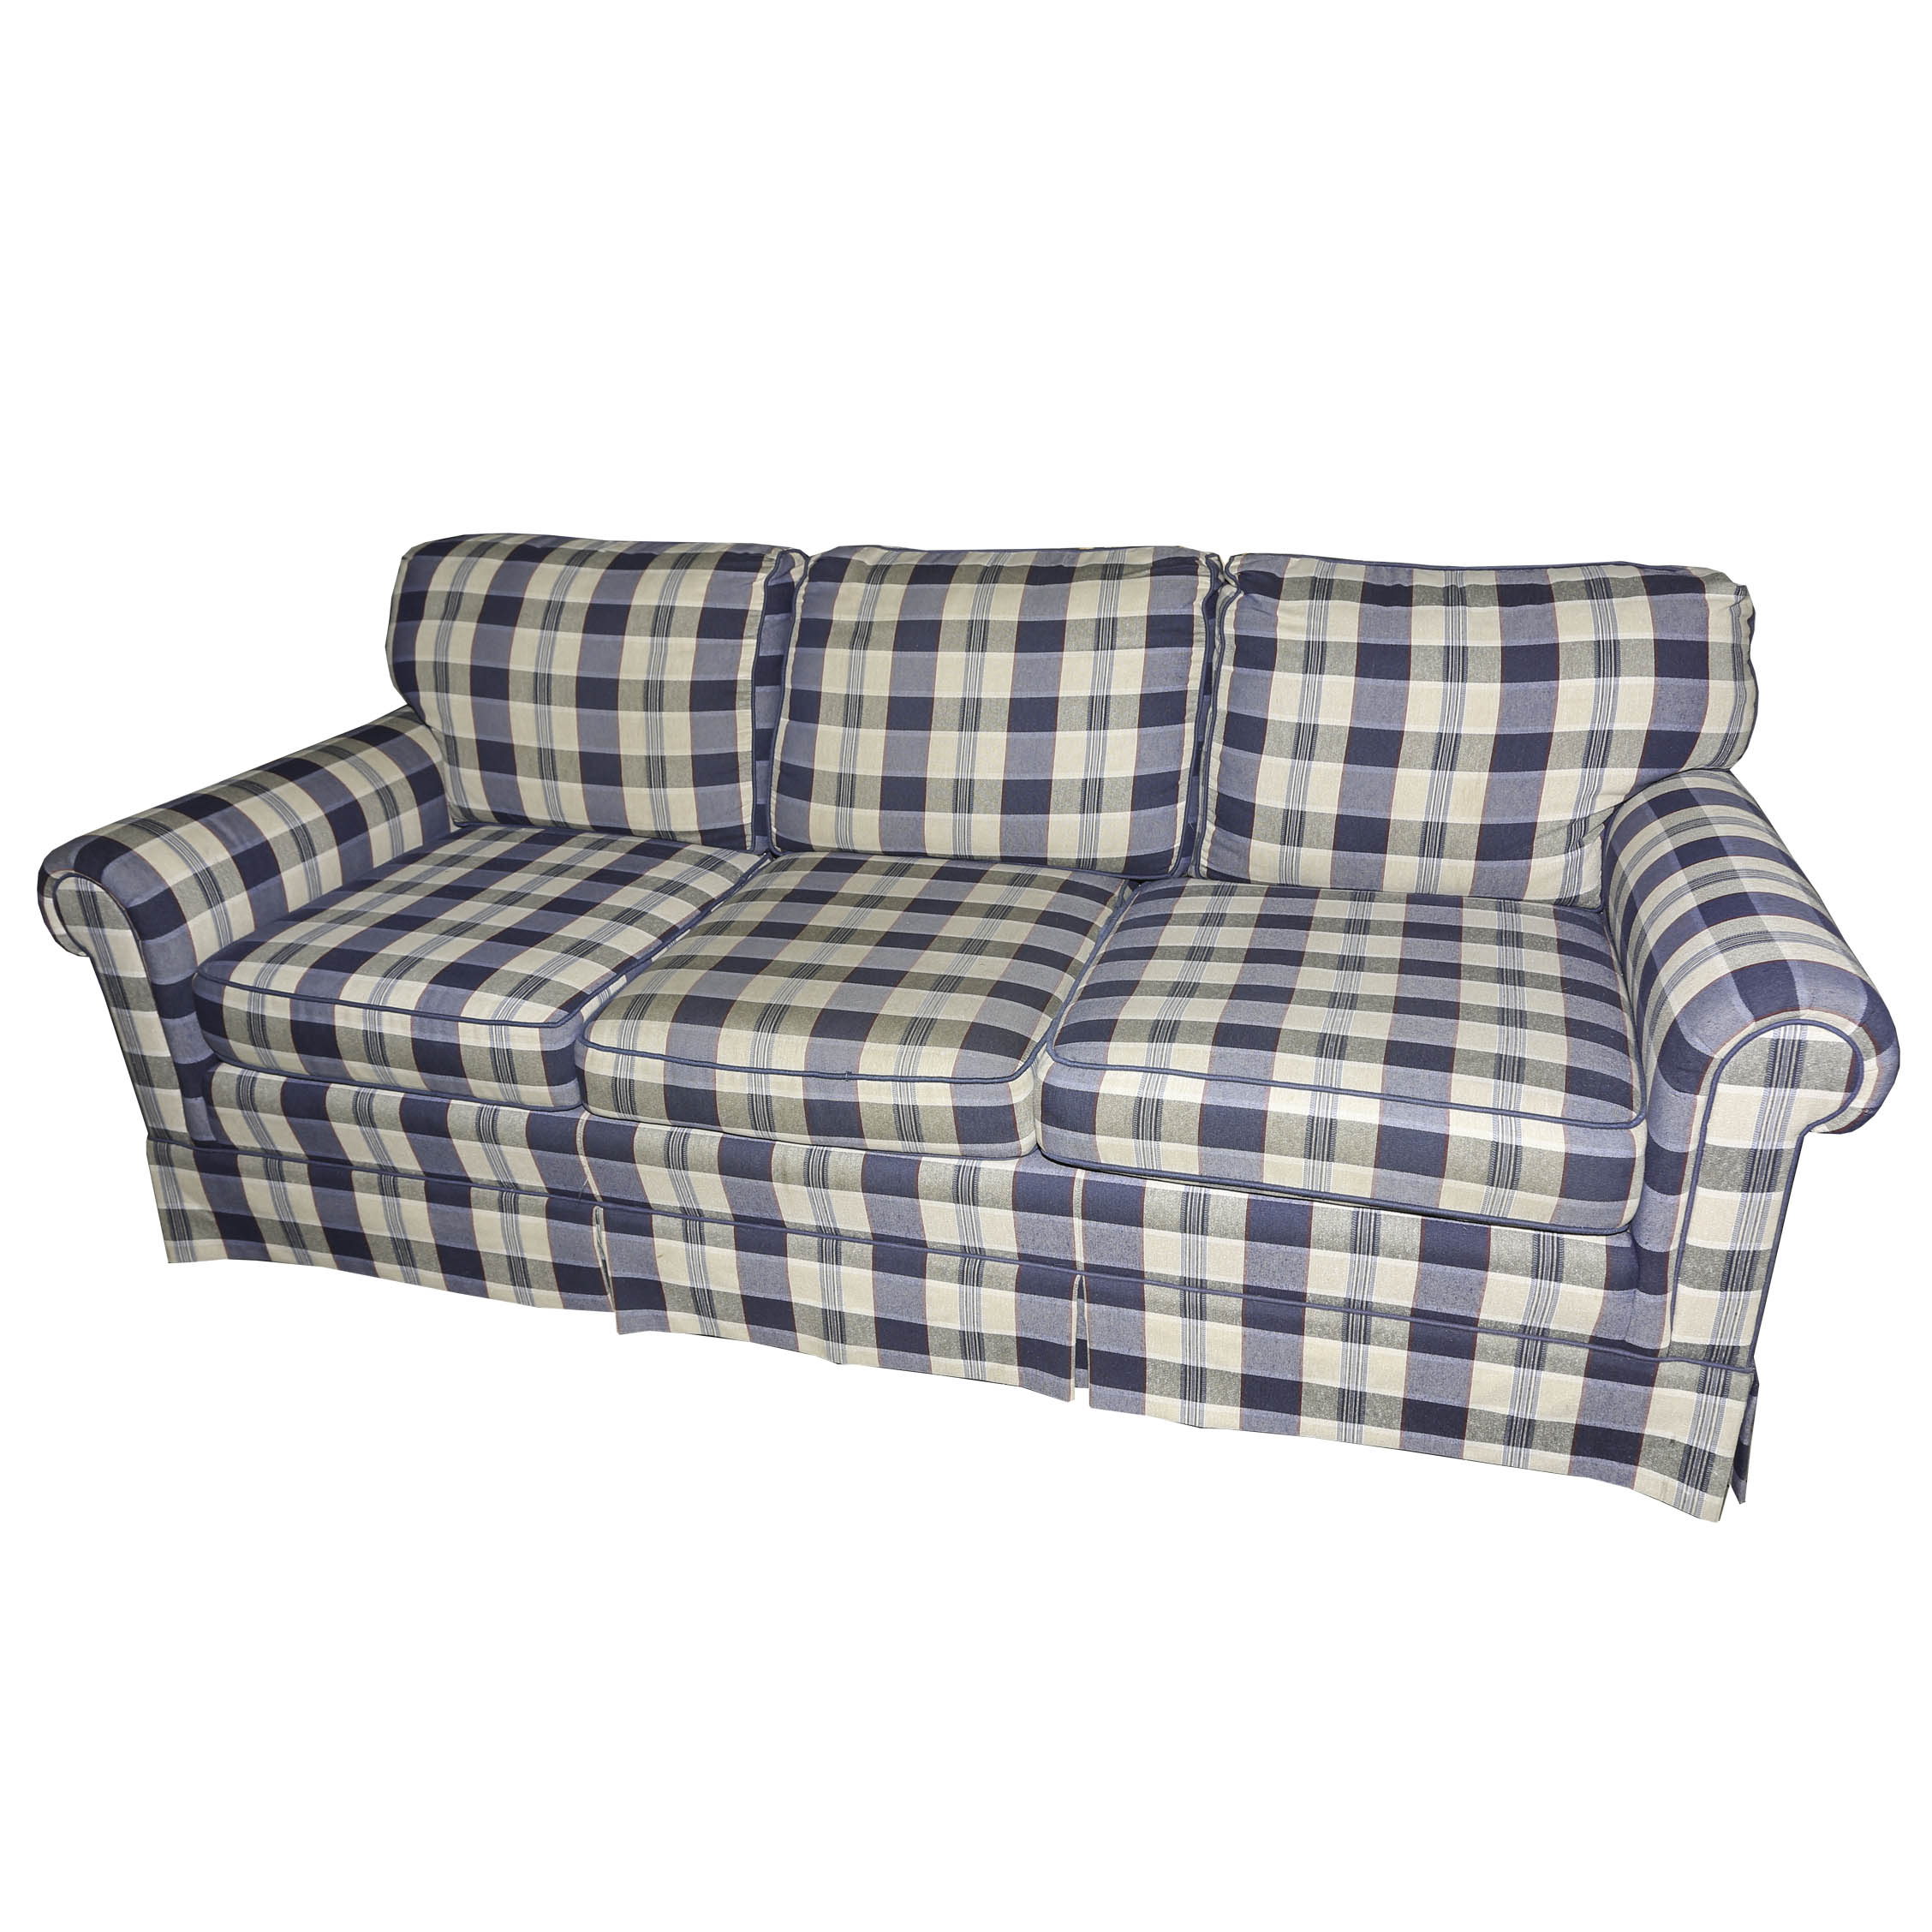 wesley hall sofas fancy couches traditional plaid sofa by ebth